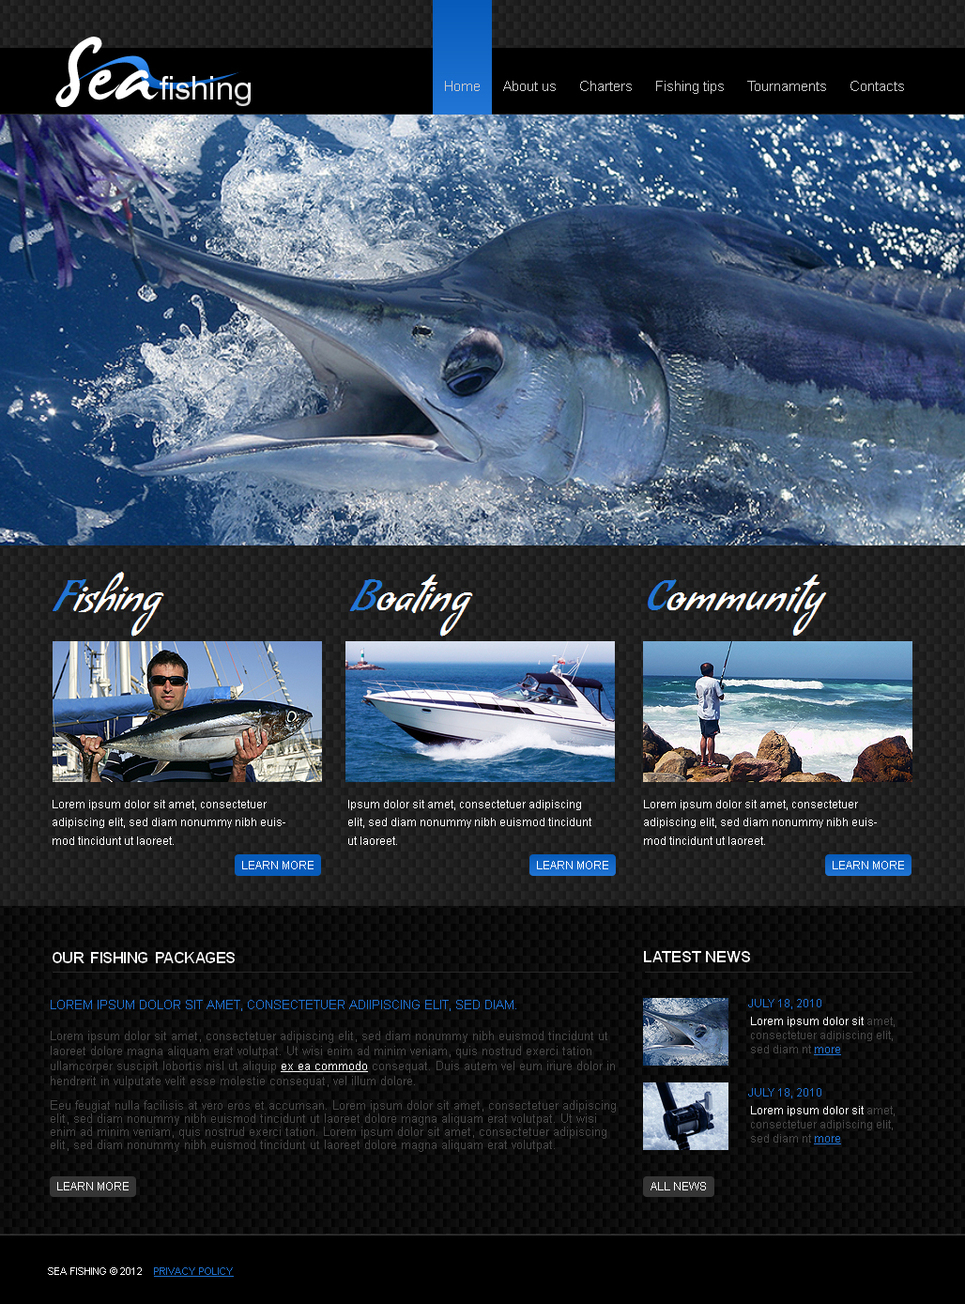 Fishing Website Template with Black Background - image